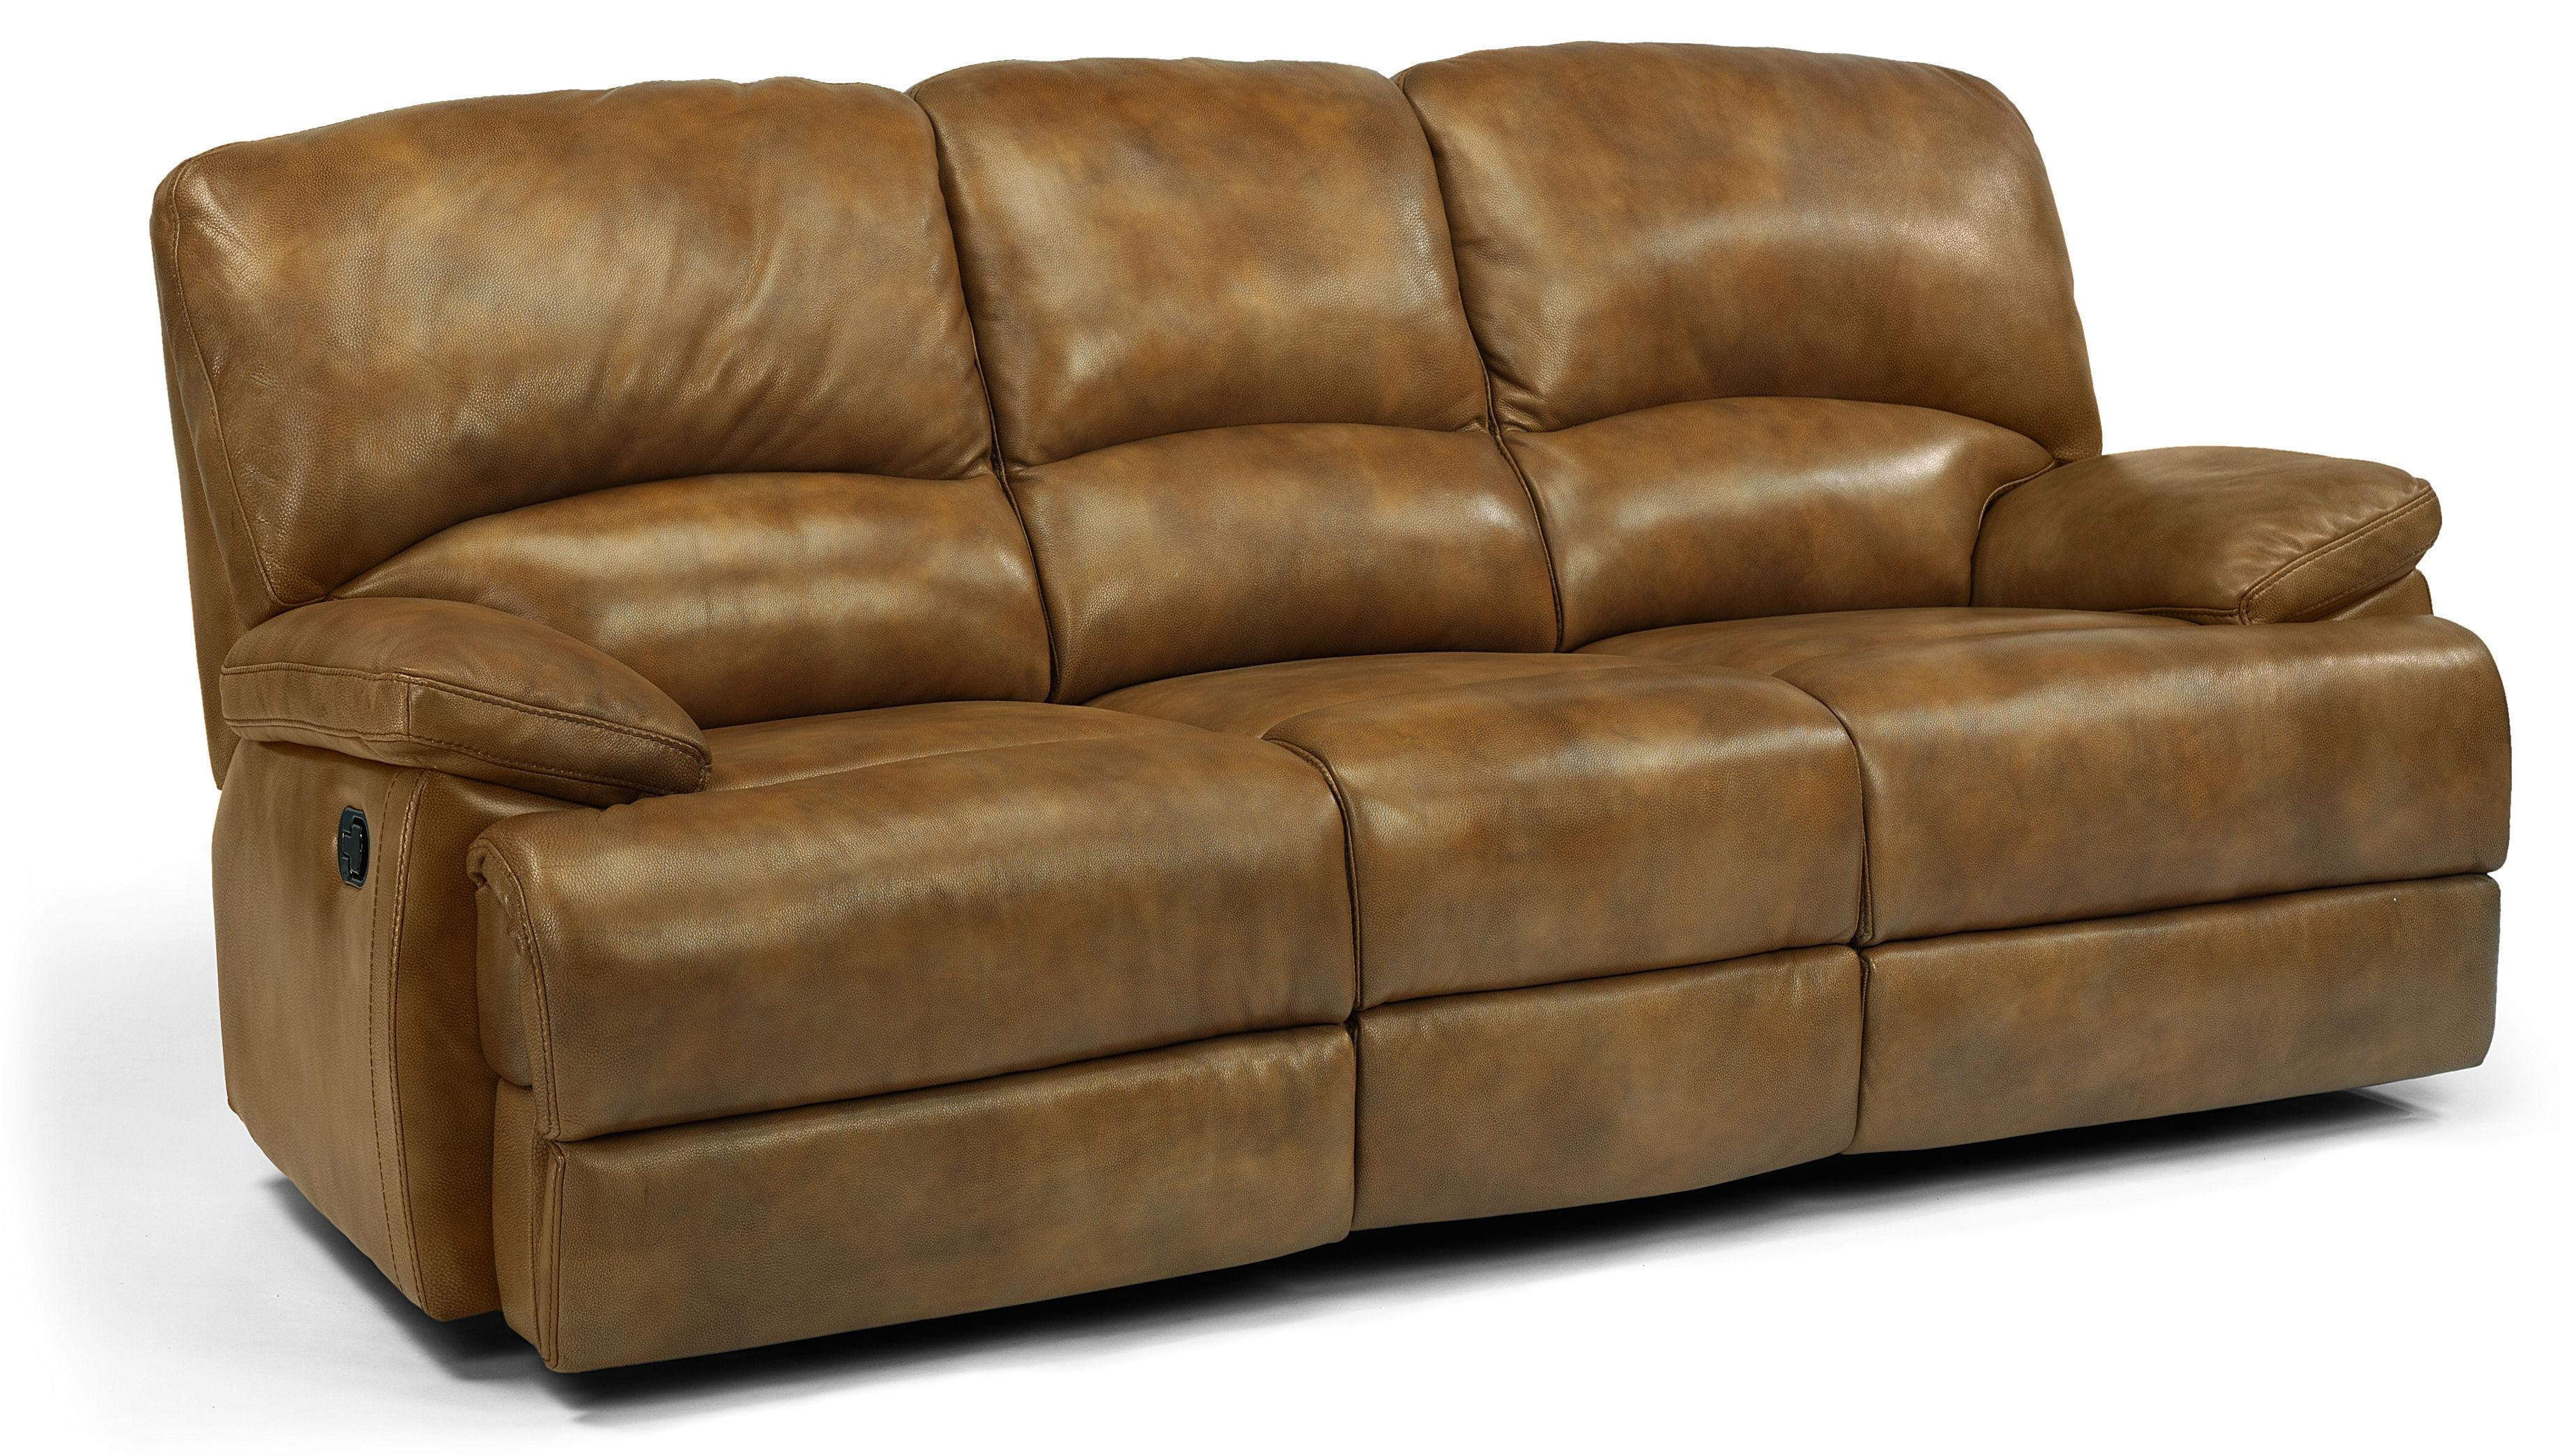 Flexsteel Latitudes - Dylan Reclining Sofa - Item Number: 1127-630